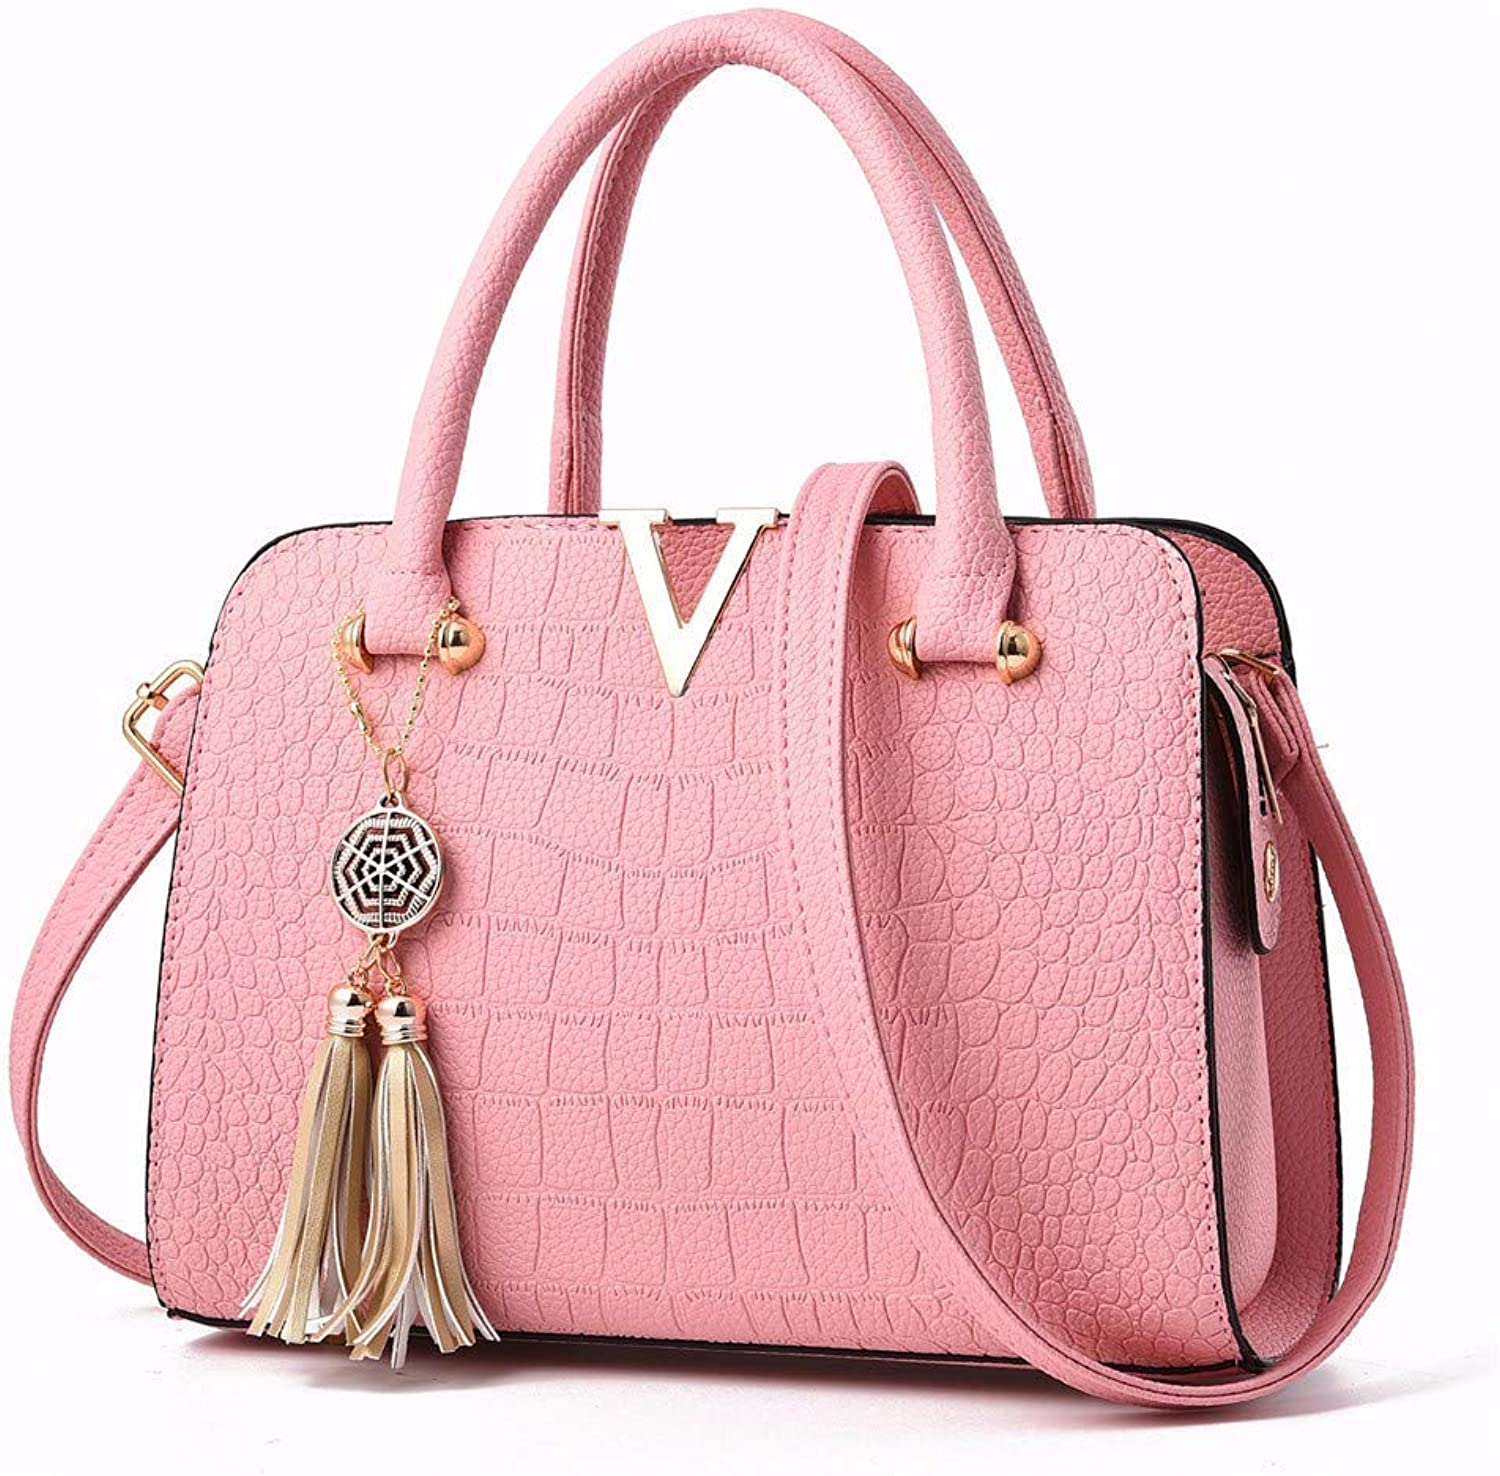 Ladies Handbag Shoulder Bag European and American Fashion PU Bag Crocodile Lady Handbag (color   Pink)